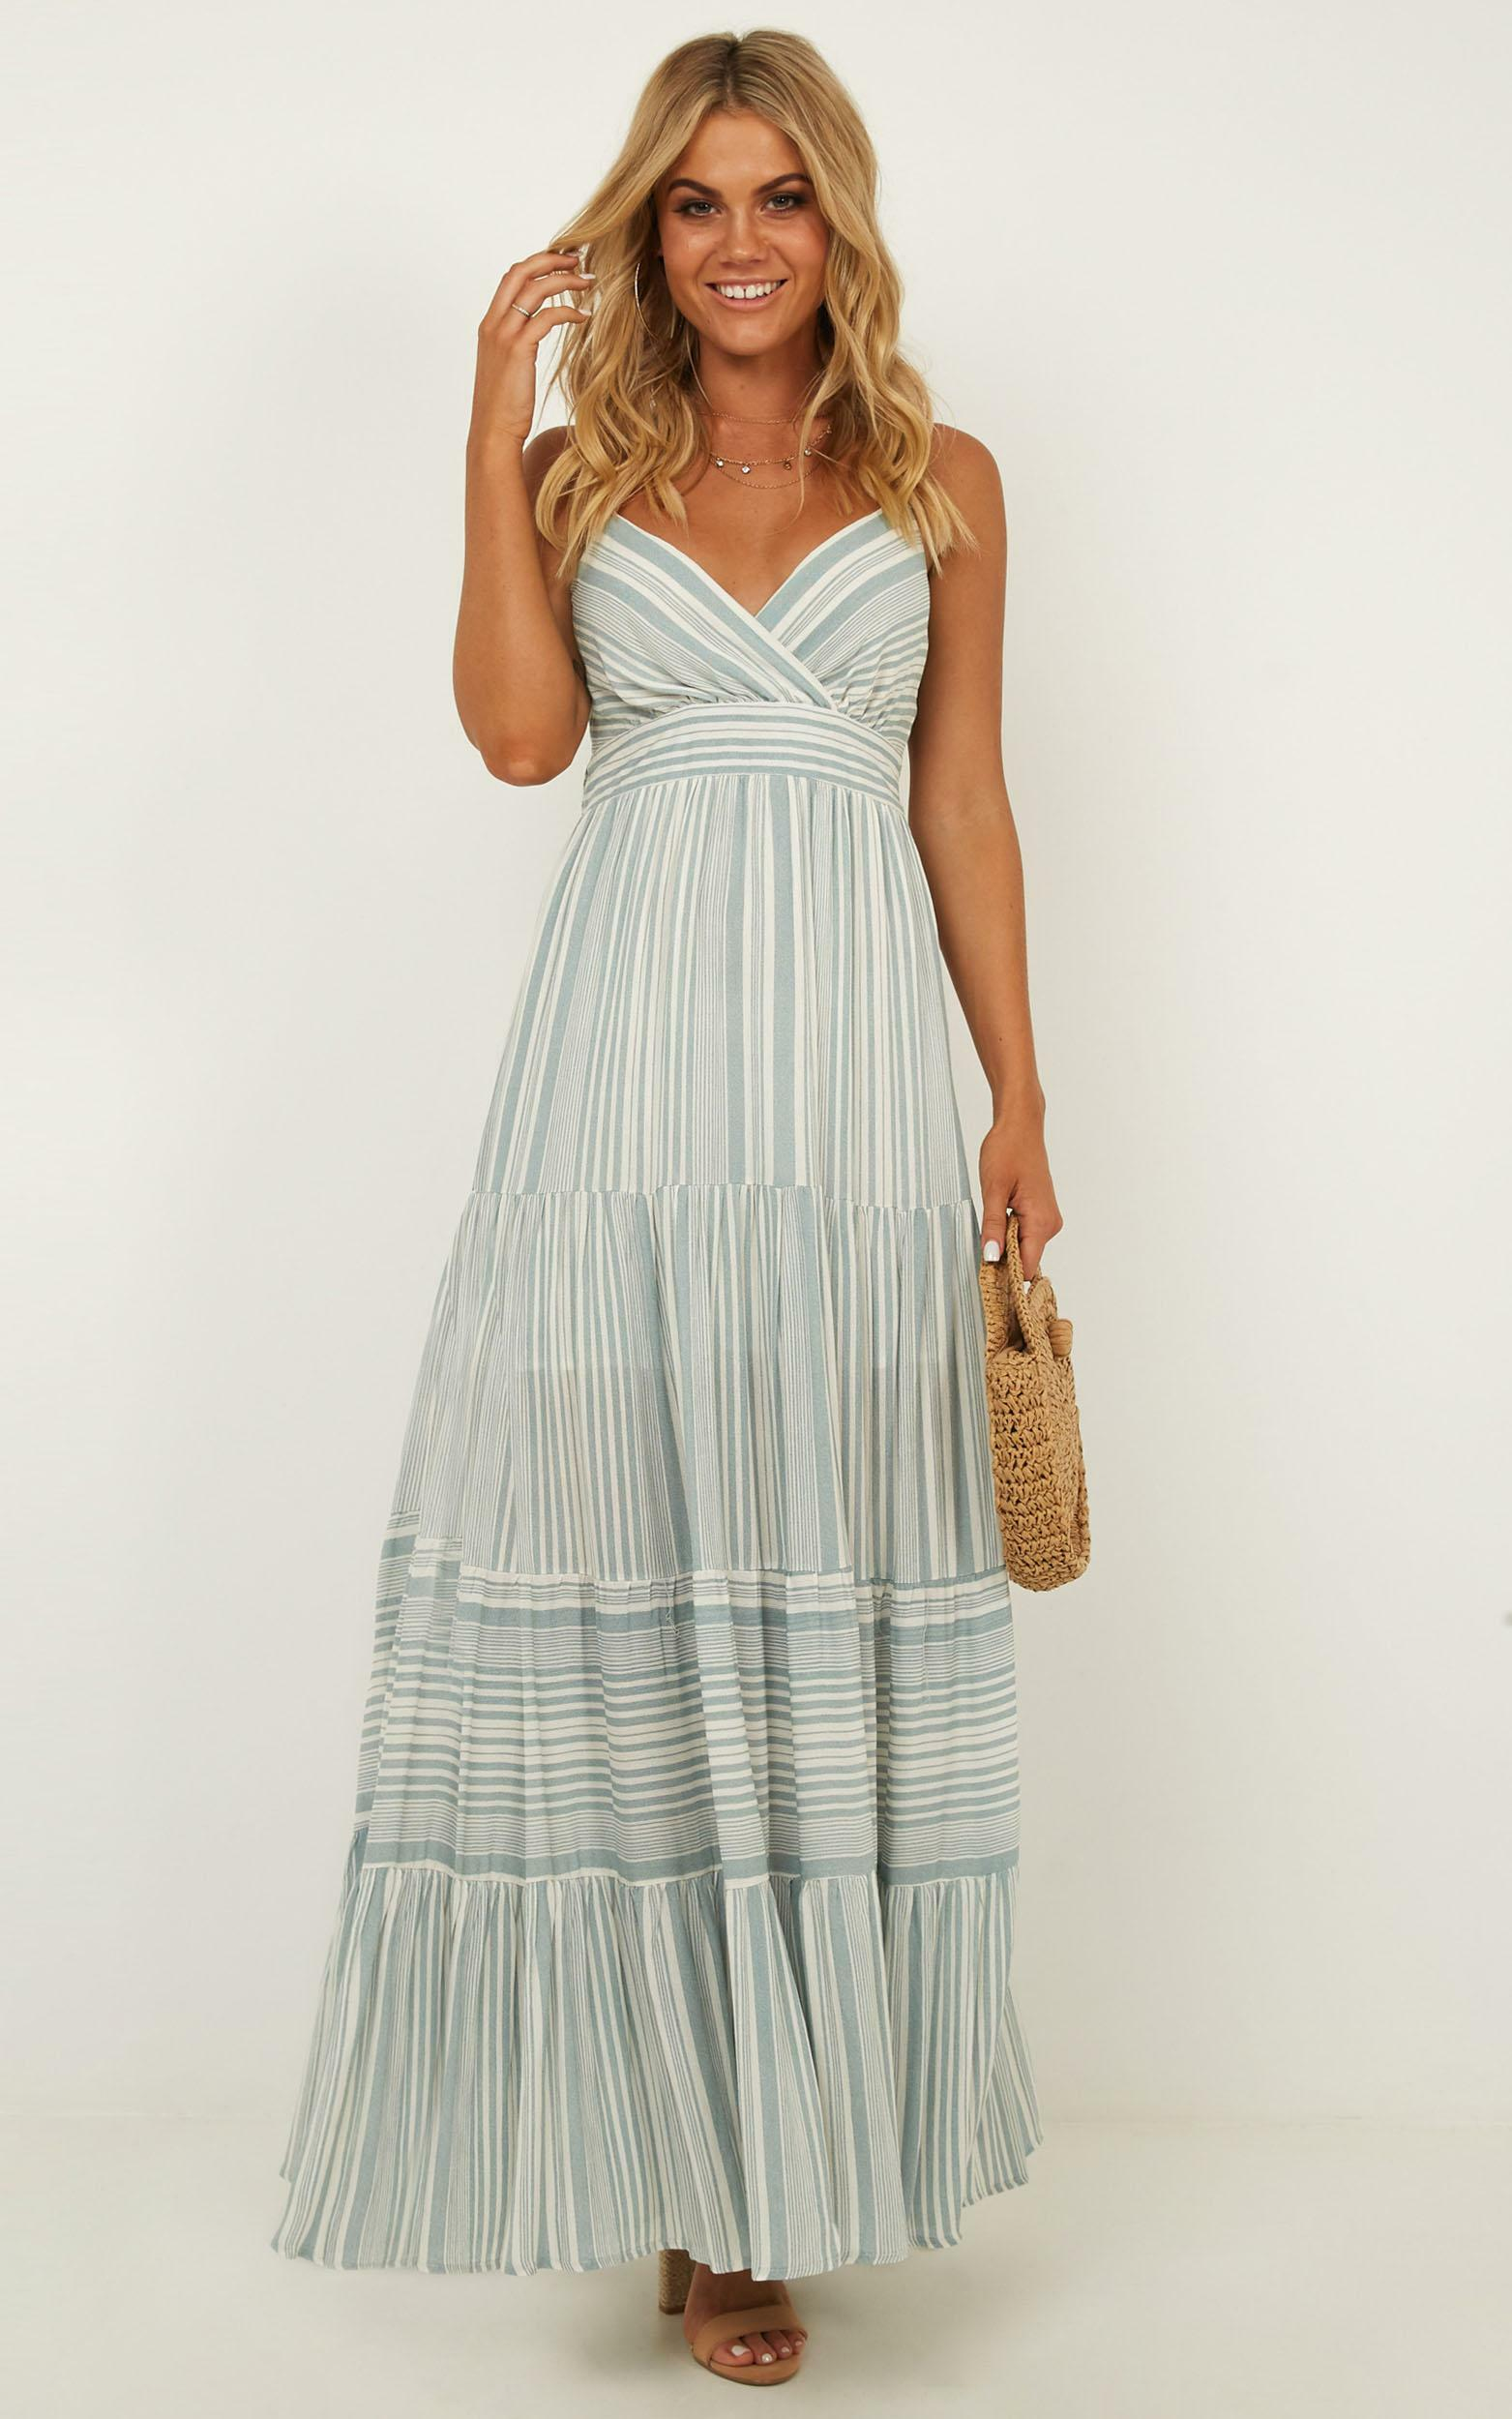 Whats It Gonna Take Dress in sage stripe - 12 (L), Sage, hi-res image number null